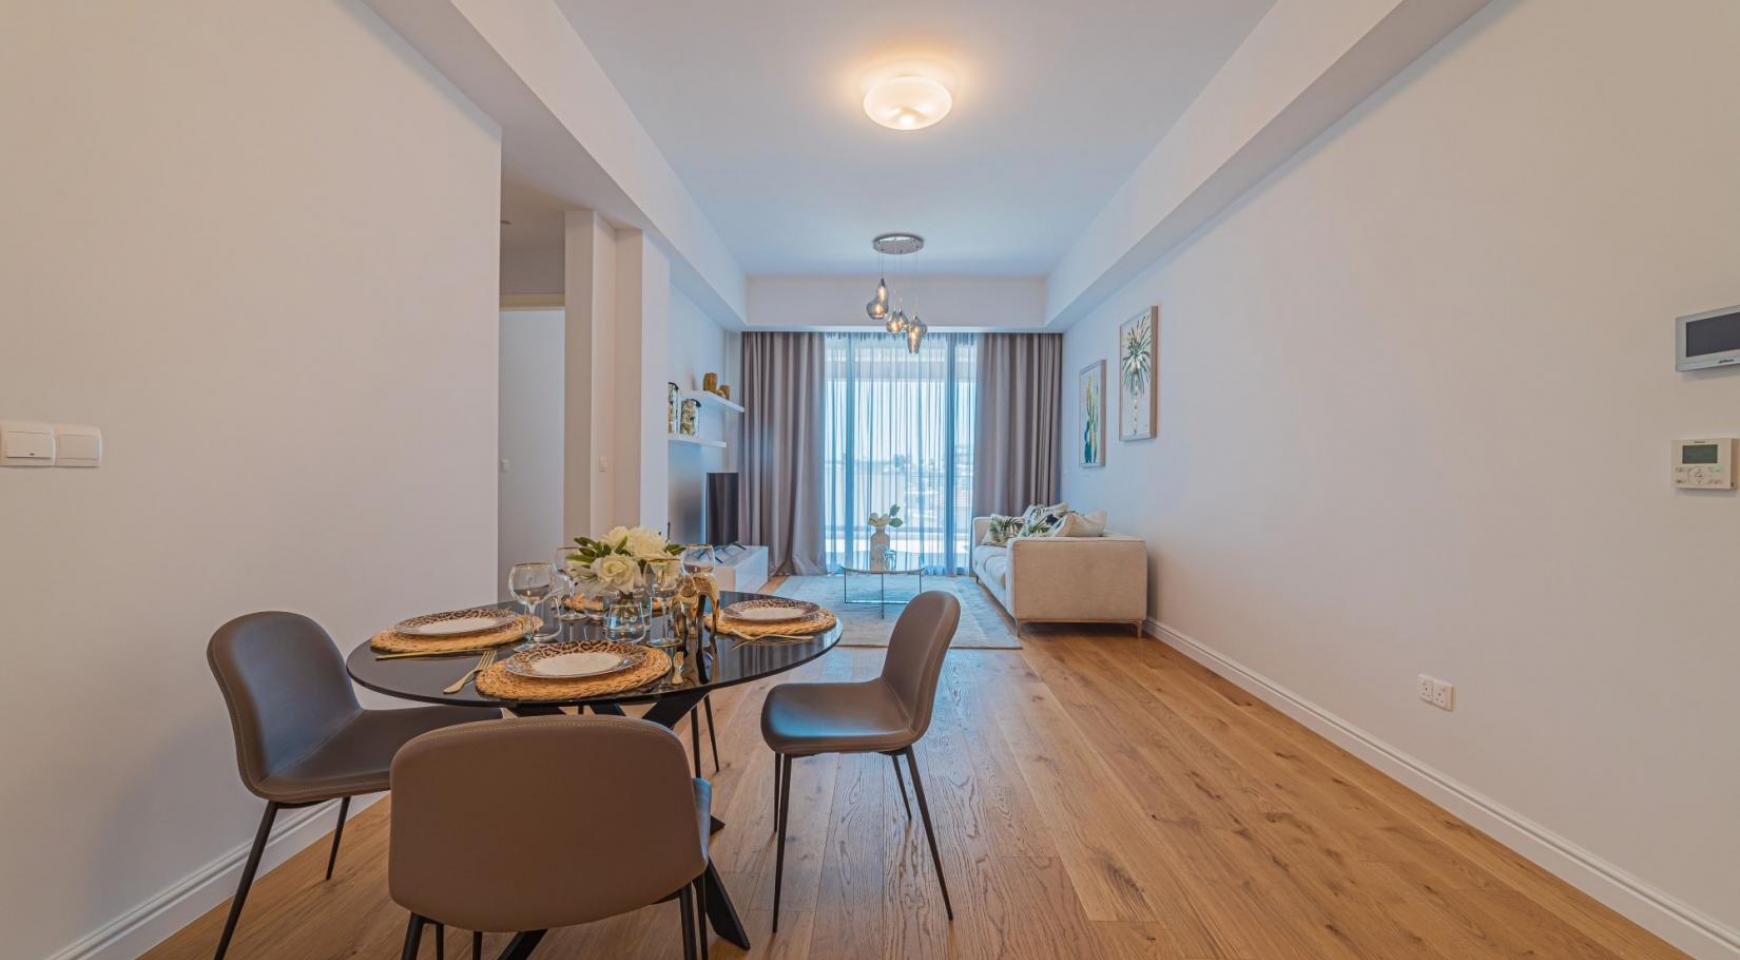 Hortensia Residence, Apt. 201. 2 Bedroom Apartment within a New Complex near the Sea  - 56